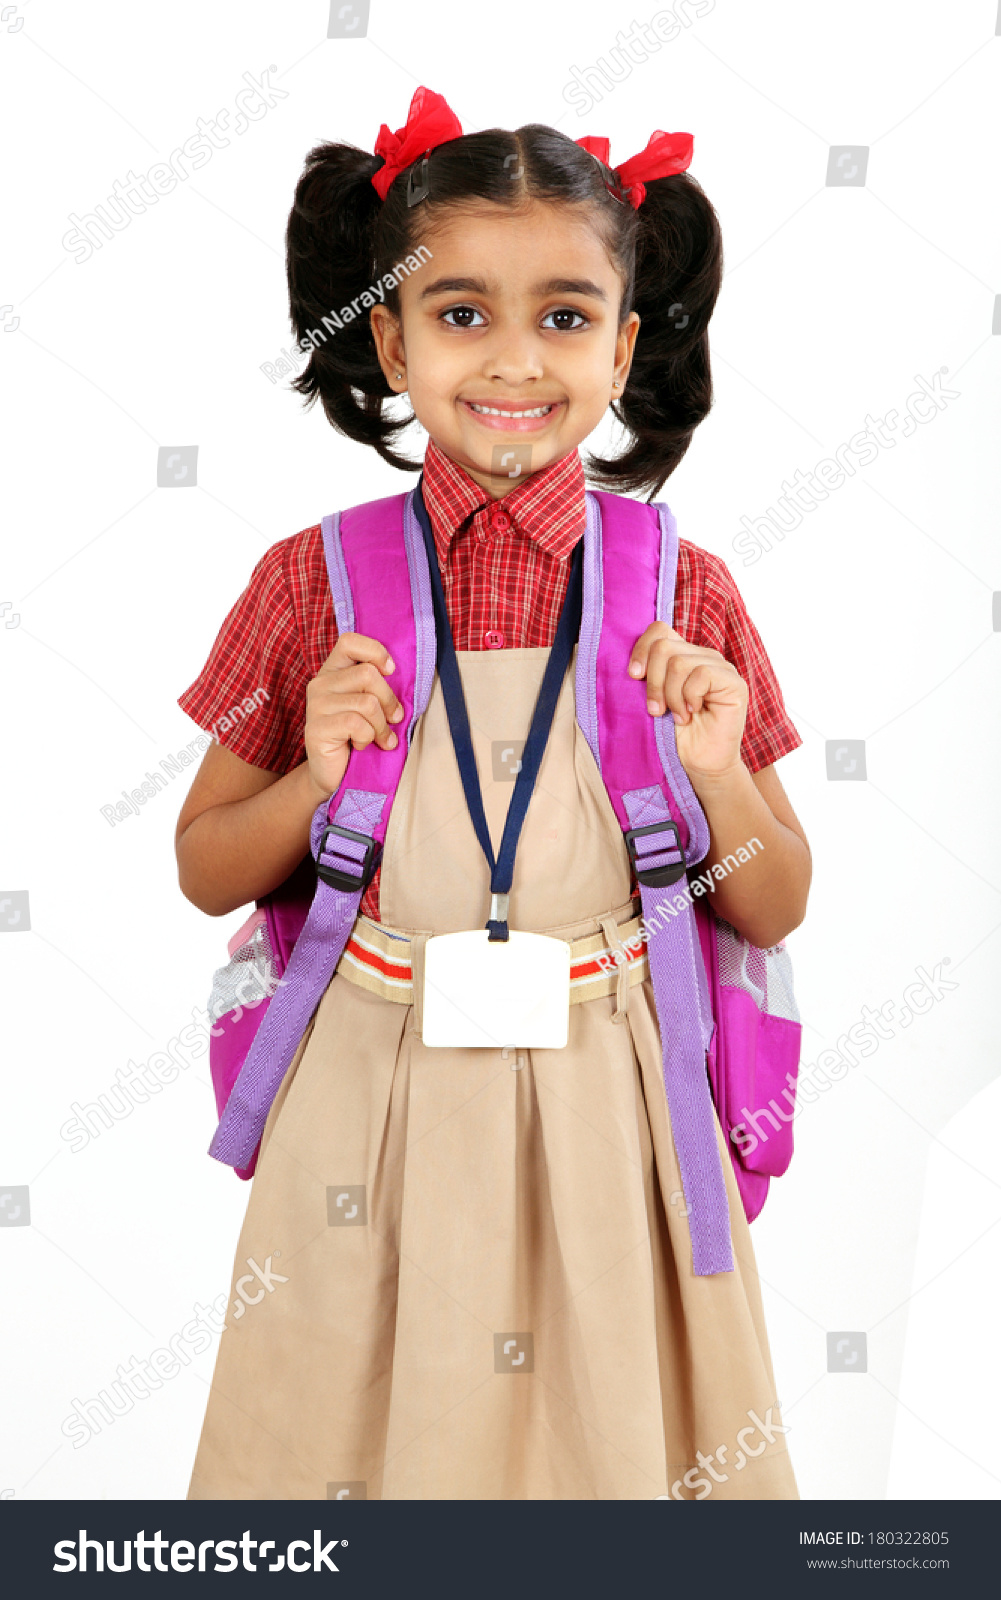 Primery School Dress Girl